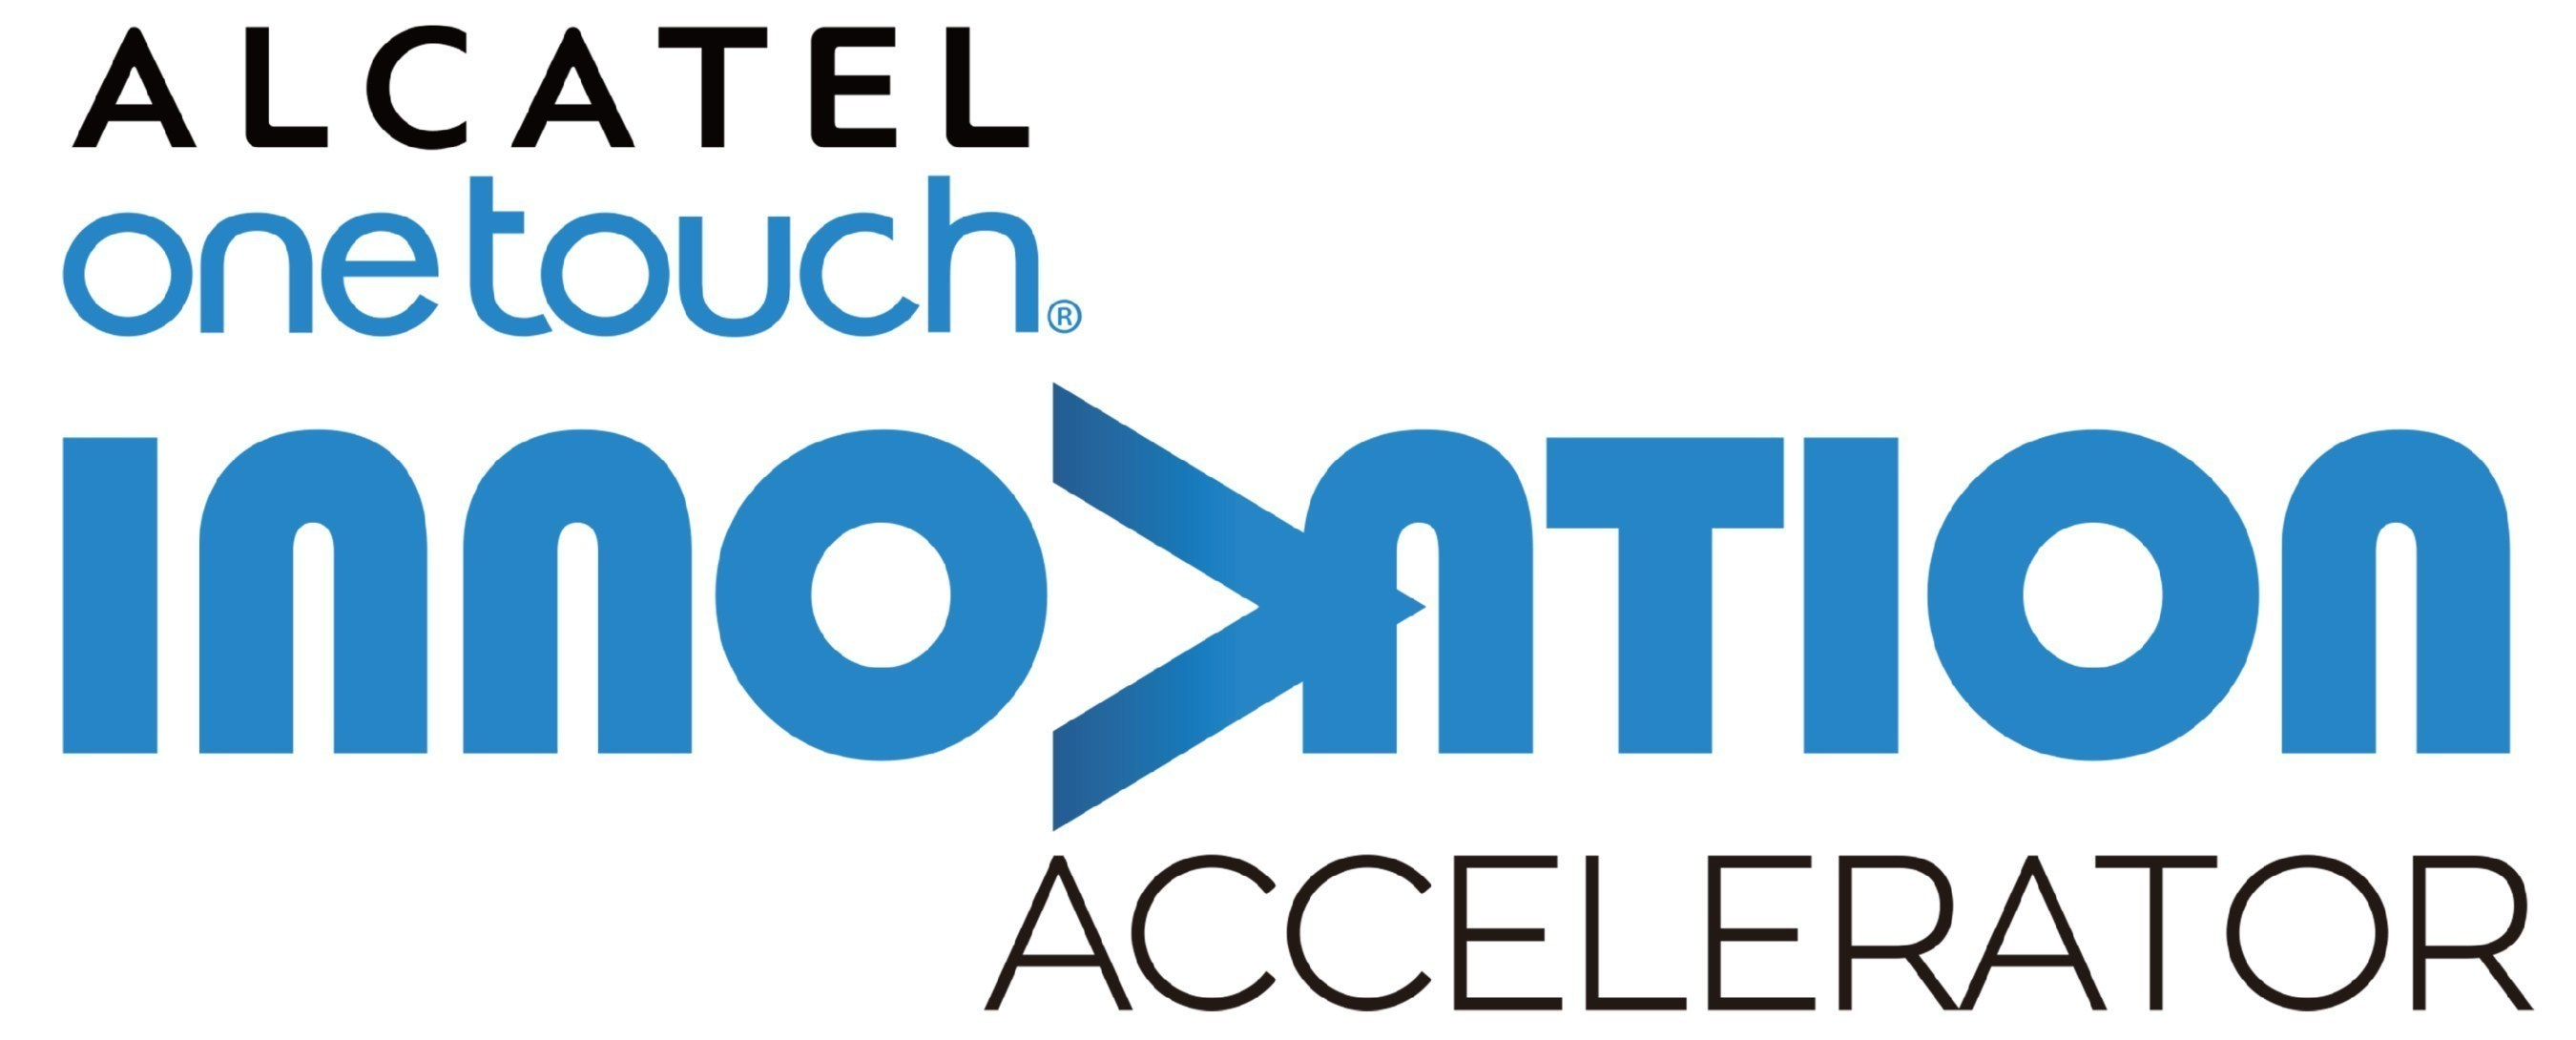 ALCATEL ONETOUCH Innovation Accelerator